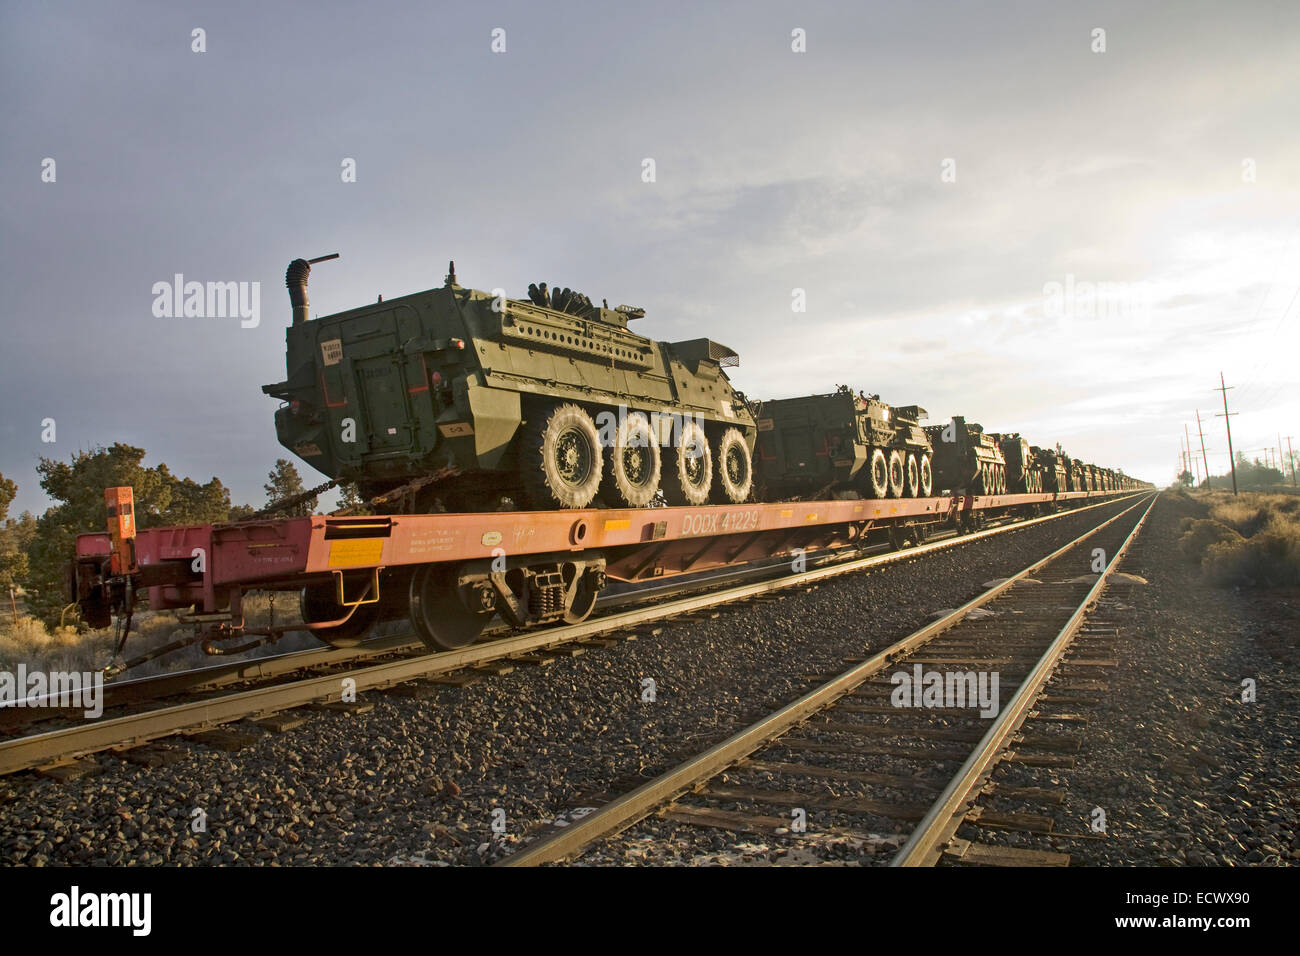 Army Vehicles Stock Photos & Army Vehicles Stock Images - Alamy